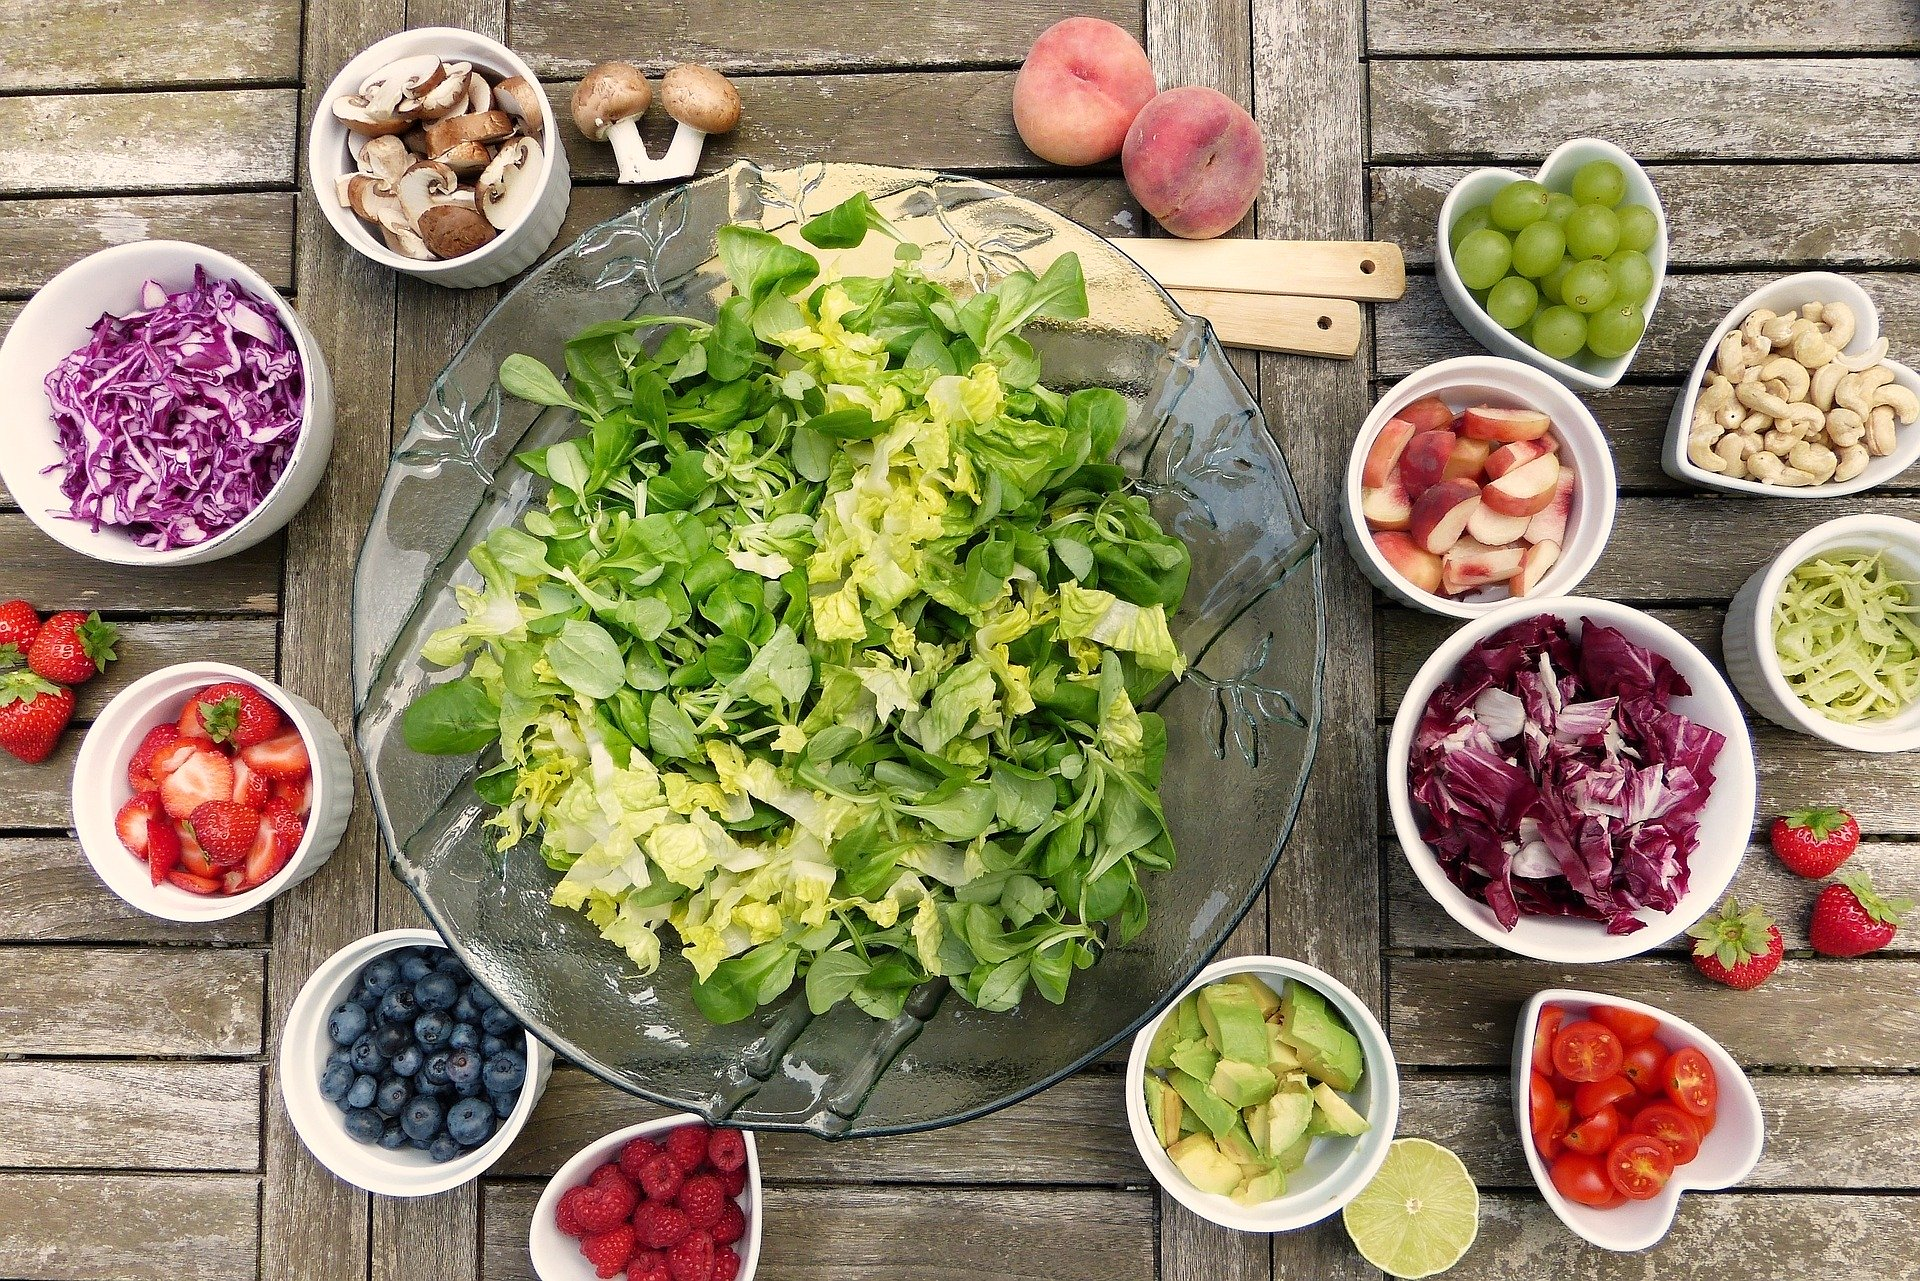 a salad bowl of leafy greens surrounded by other smaller bowls of fruit, other vegetables and nuts